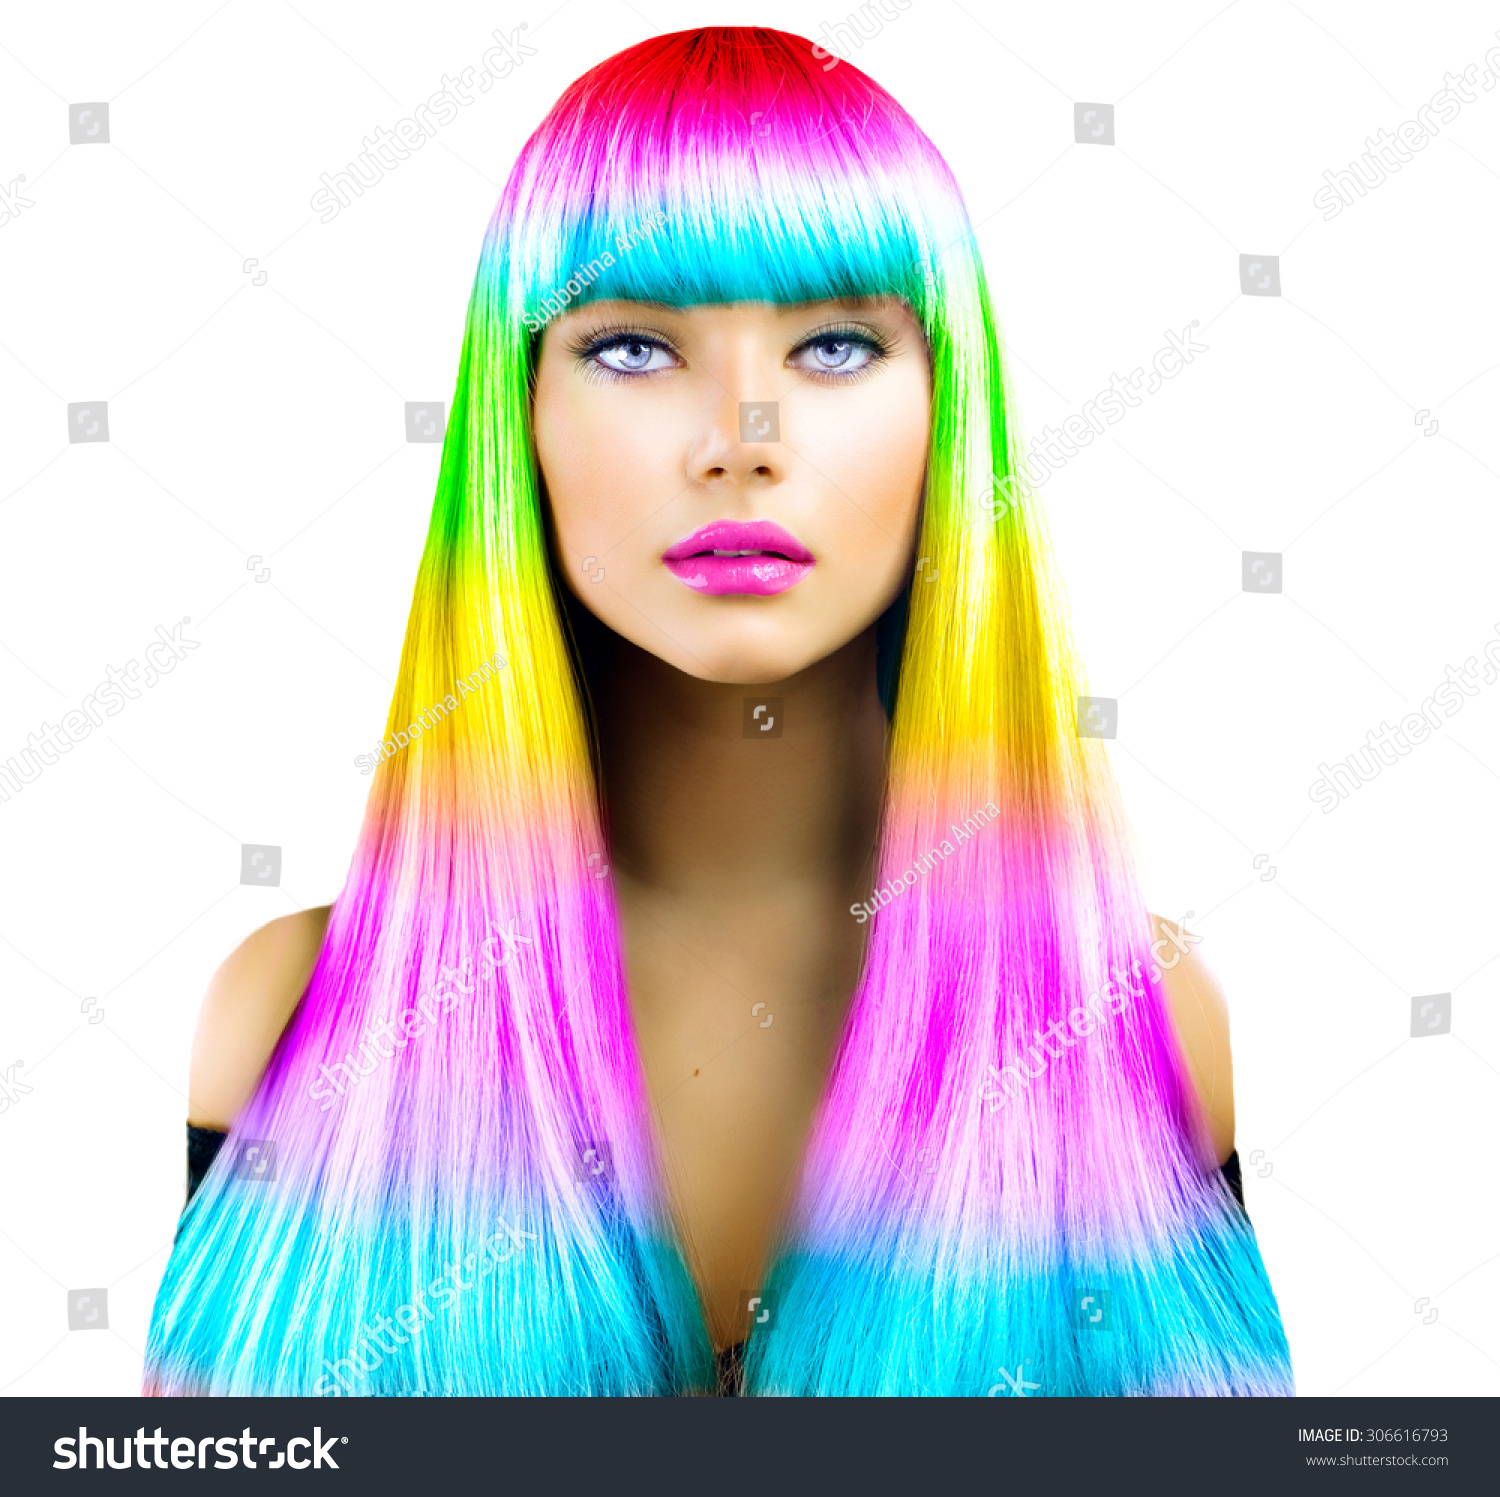 Beauty Fashion Model Girl with Colorful Dyed Hair Colourful Long Hair Portrait of a Beautiful Woman with Colorful Dyed Hair professional hair Coloring Colouring hair fringe haircut